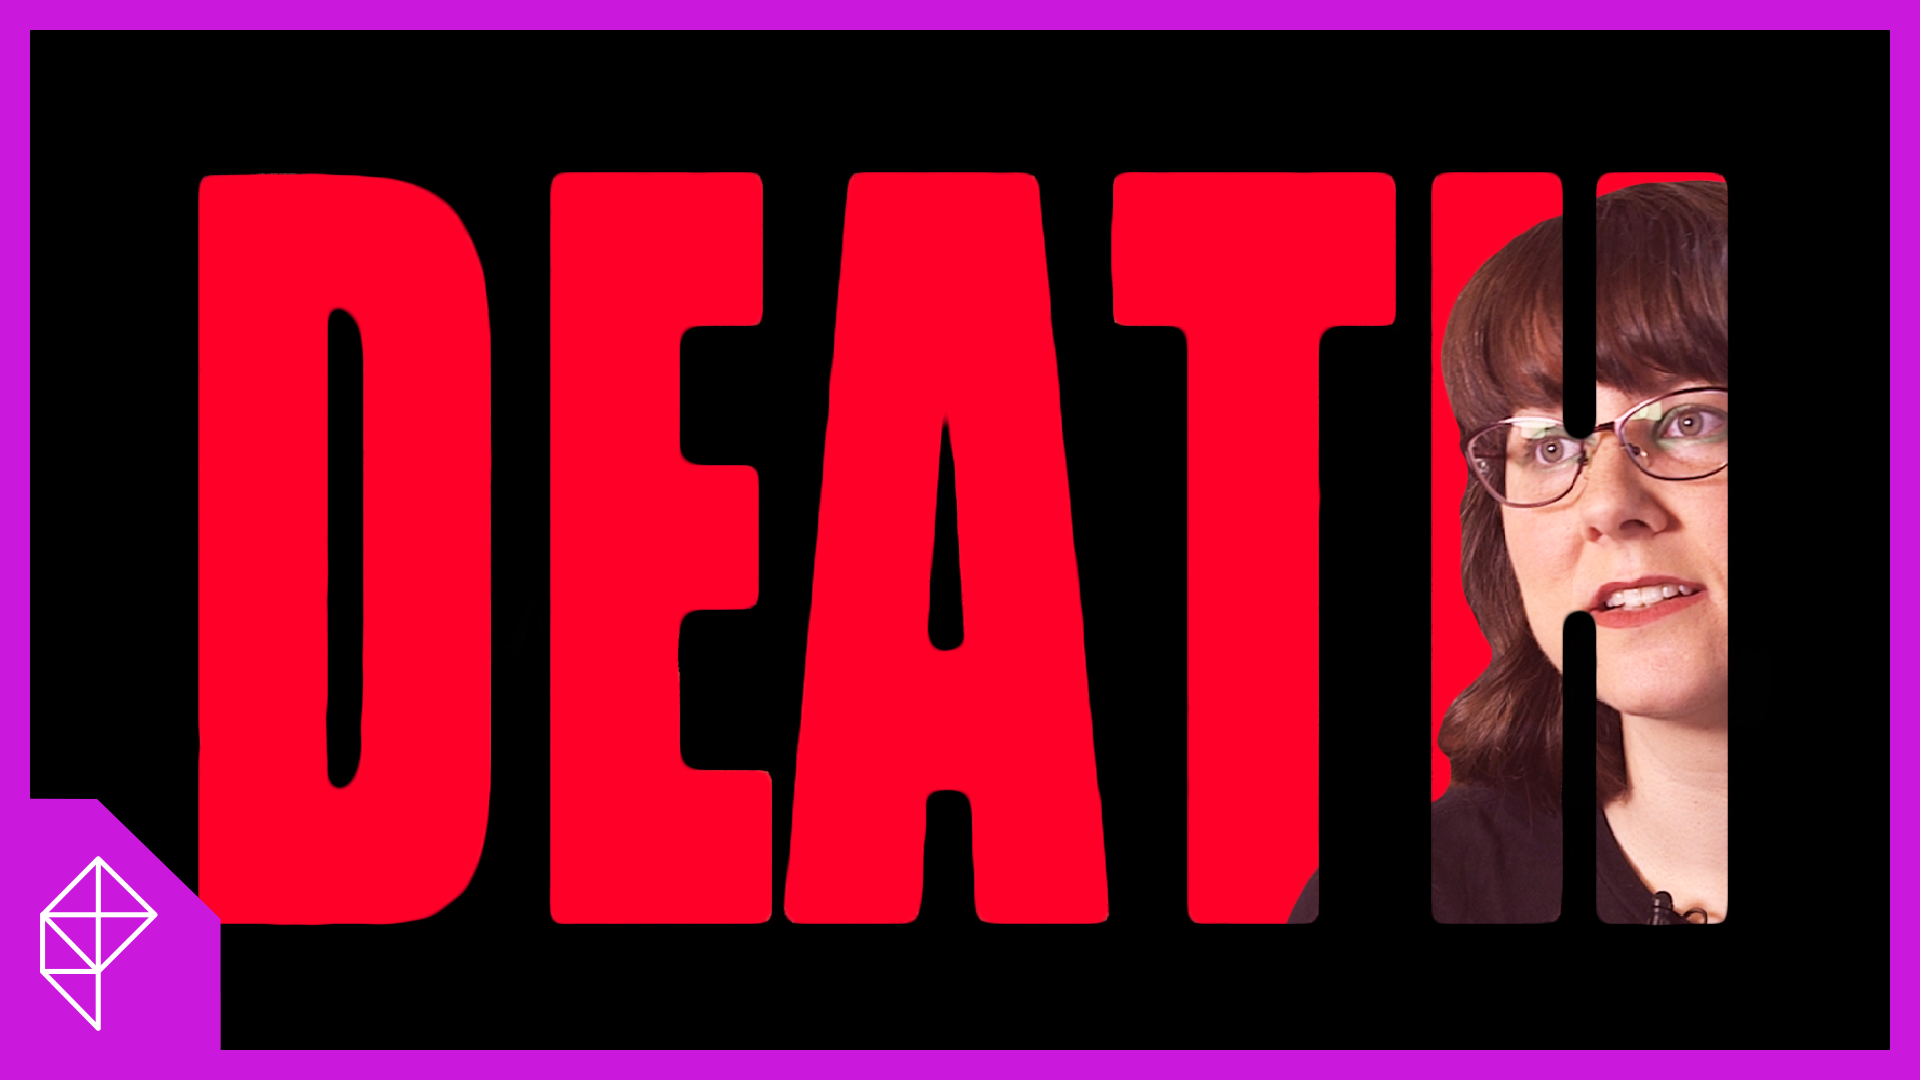 DEATH in big red letters appears on a black background. In the letter H, a brunette woman with a distasteful look on her face peeks through.